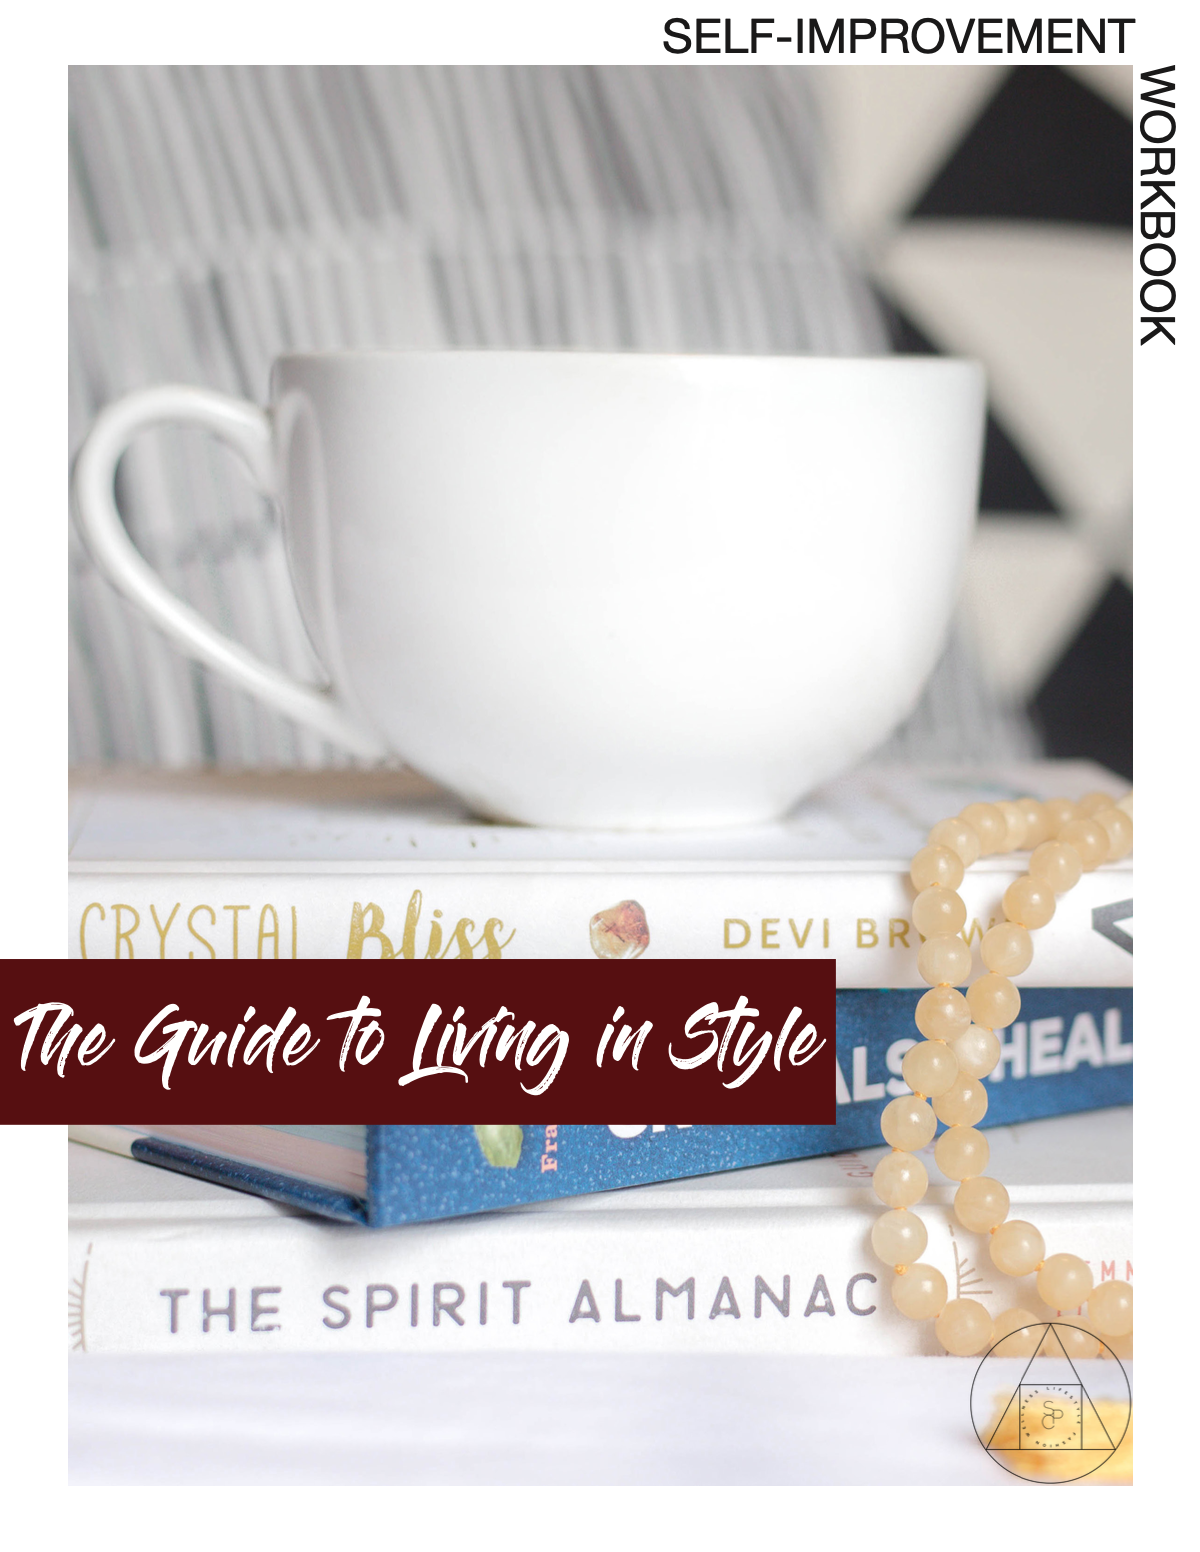 The Guide To Living In Style Workbook